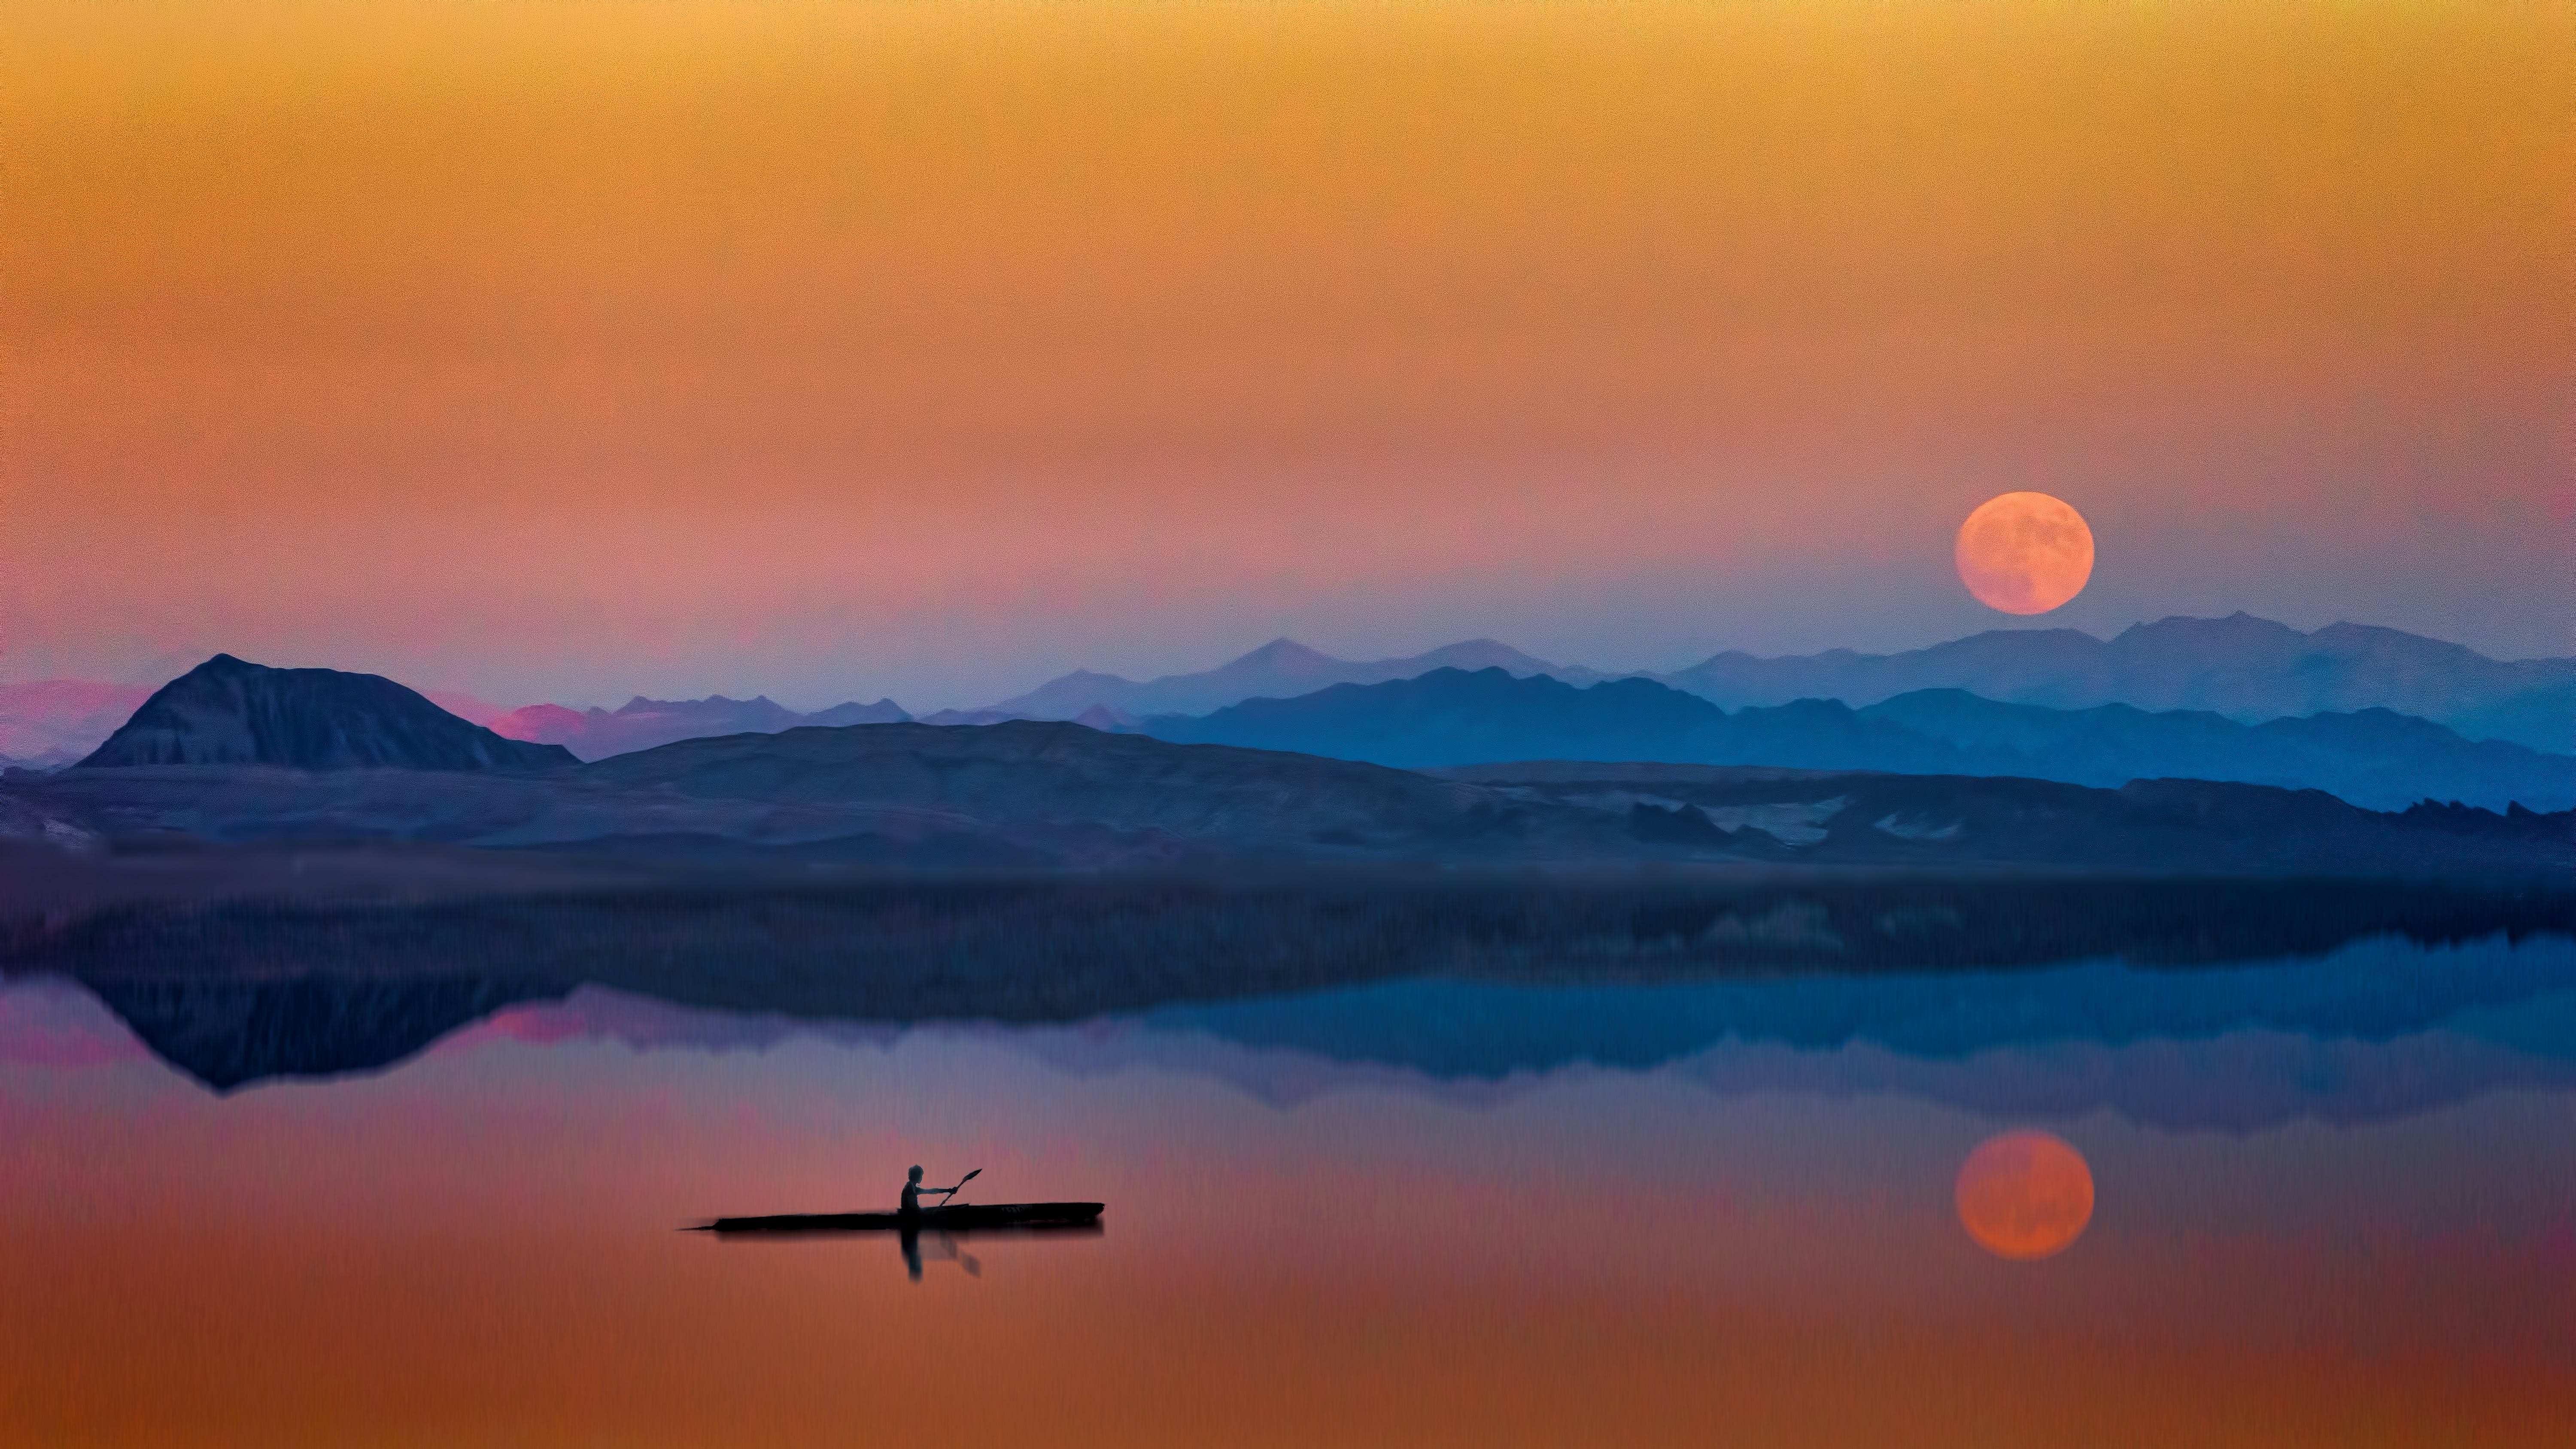 Man On the Boat Near Mountains During Golden Hour